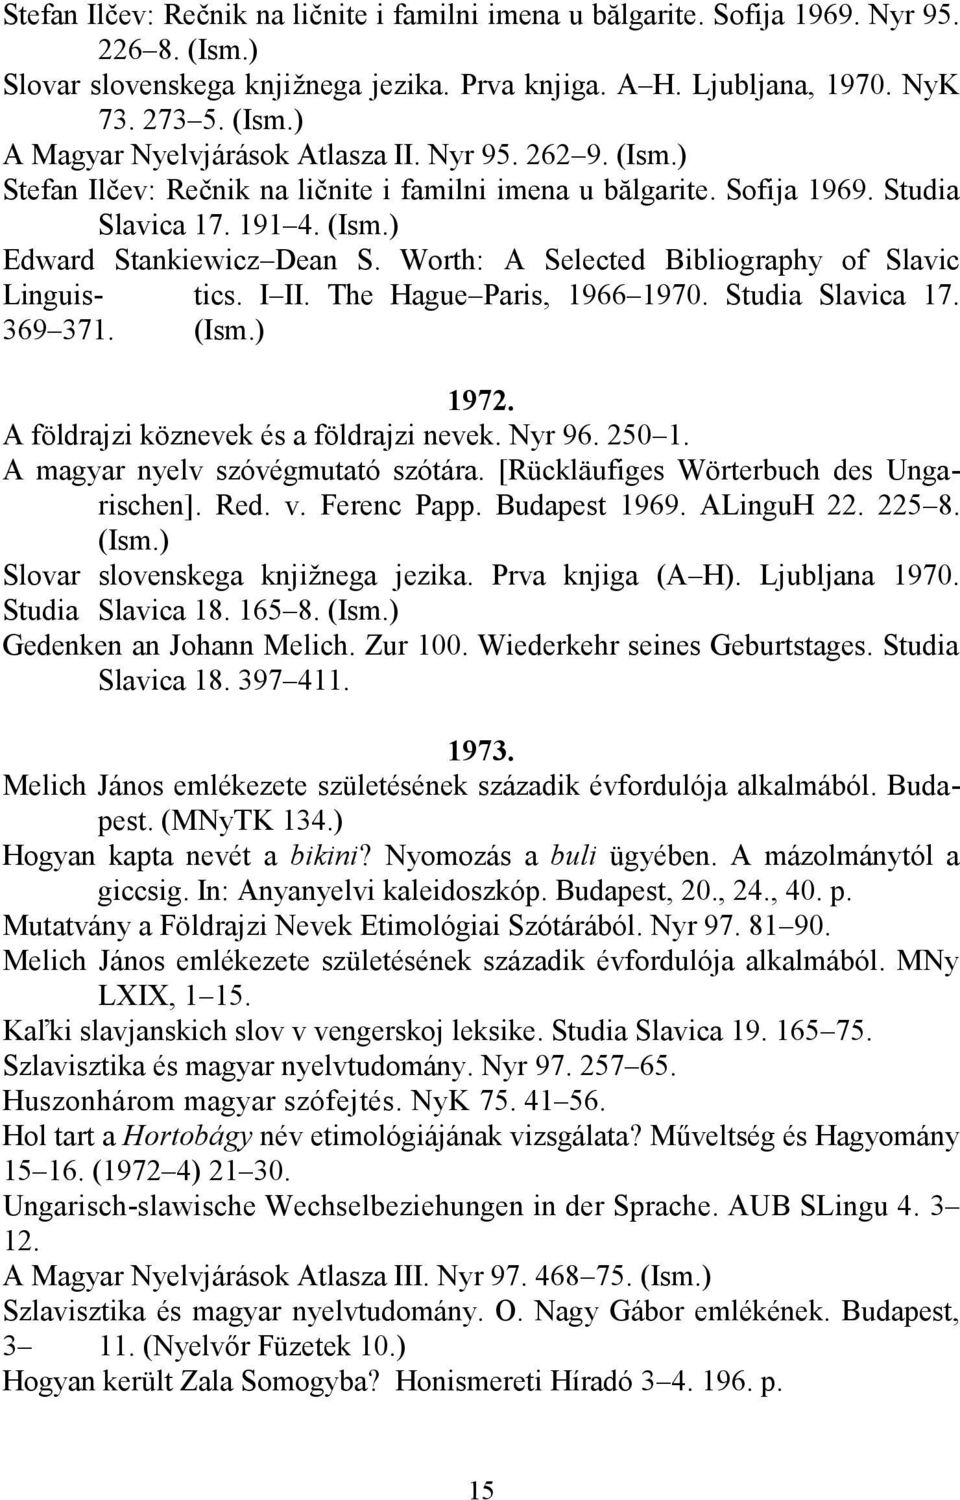 Worth: A Selected Bibliography of Slavic Linguis- tics. I II. The Hague Paris, 1966 1970. Studia Slavica 17. 369 371. (Ism.) 1972. A földrajzi köznevek és a földrajzi nevek. Nyr 96. 250 1.